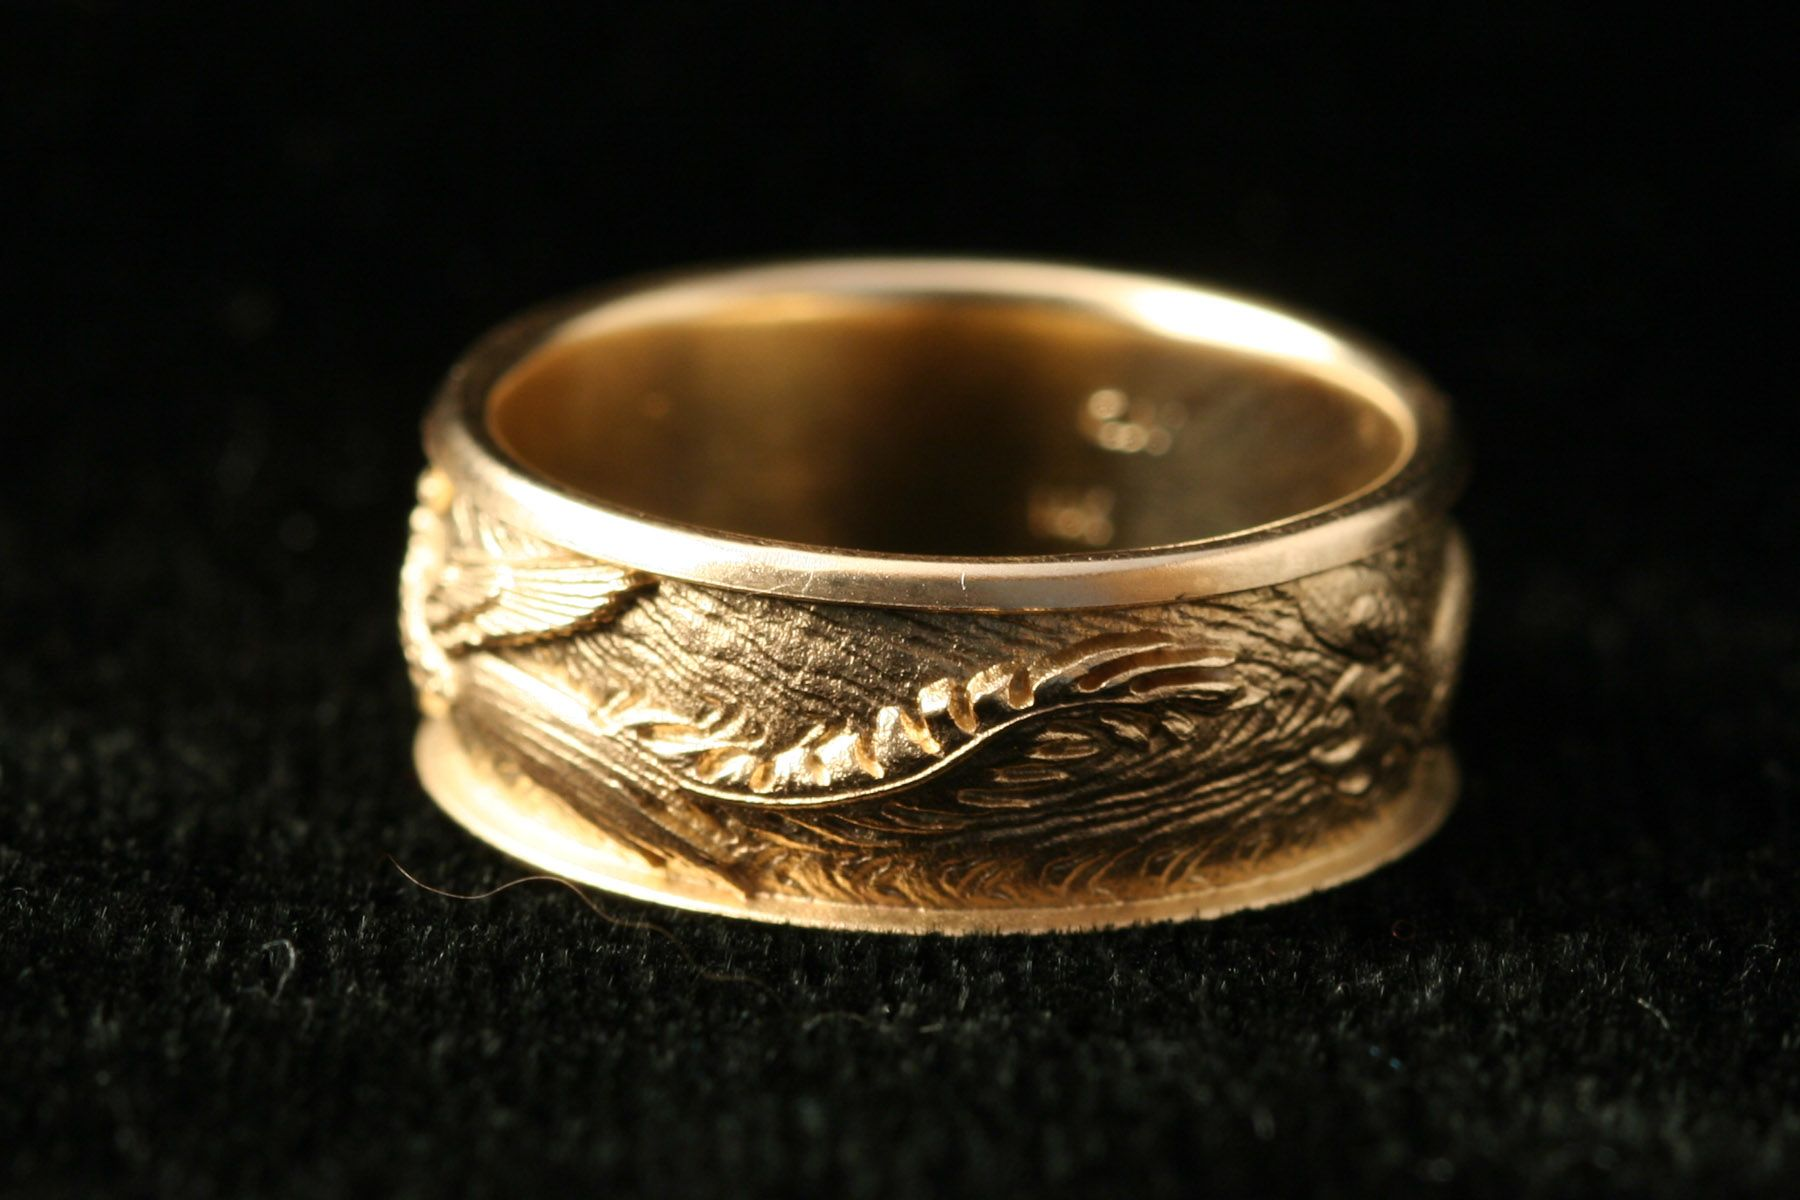 rings carved mcguire yellow product wedding gold art dsc artist haida humming category hand bird northwest reynolds jim gallery native douglas coast ring by